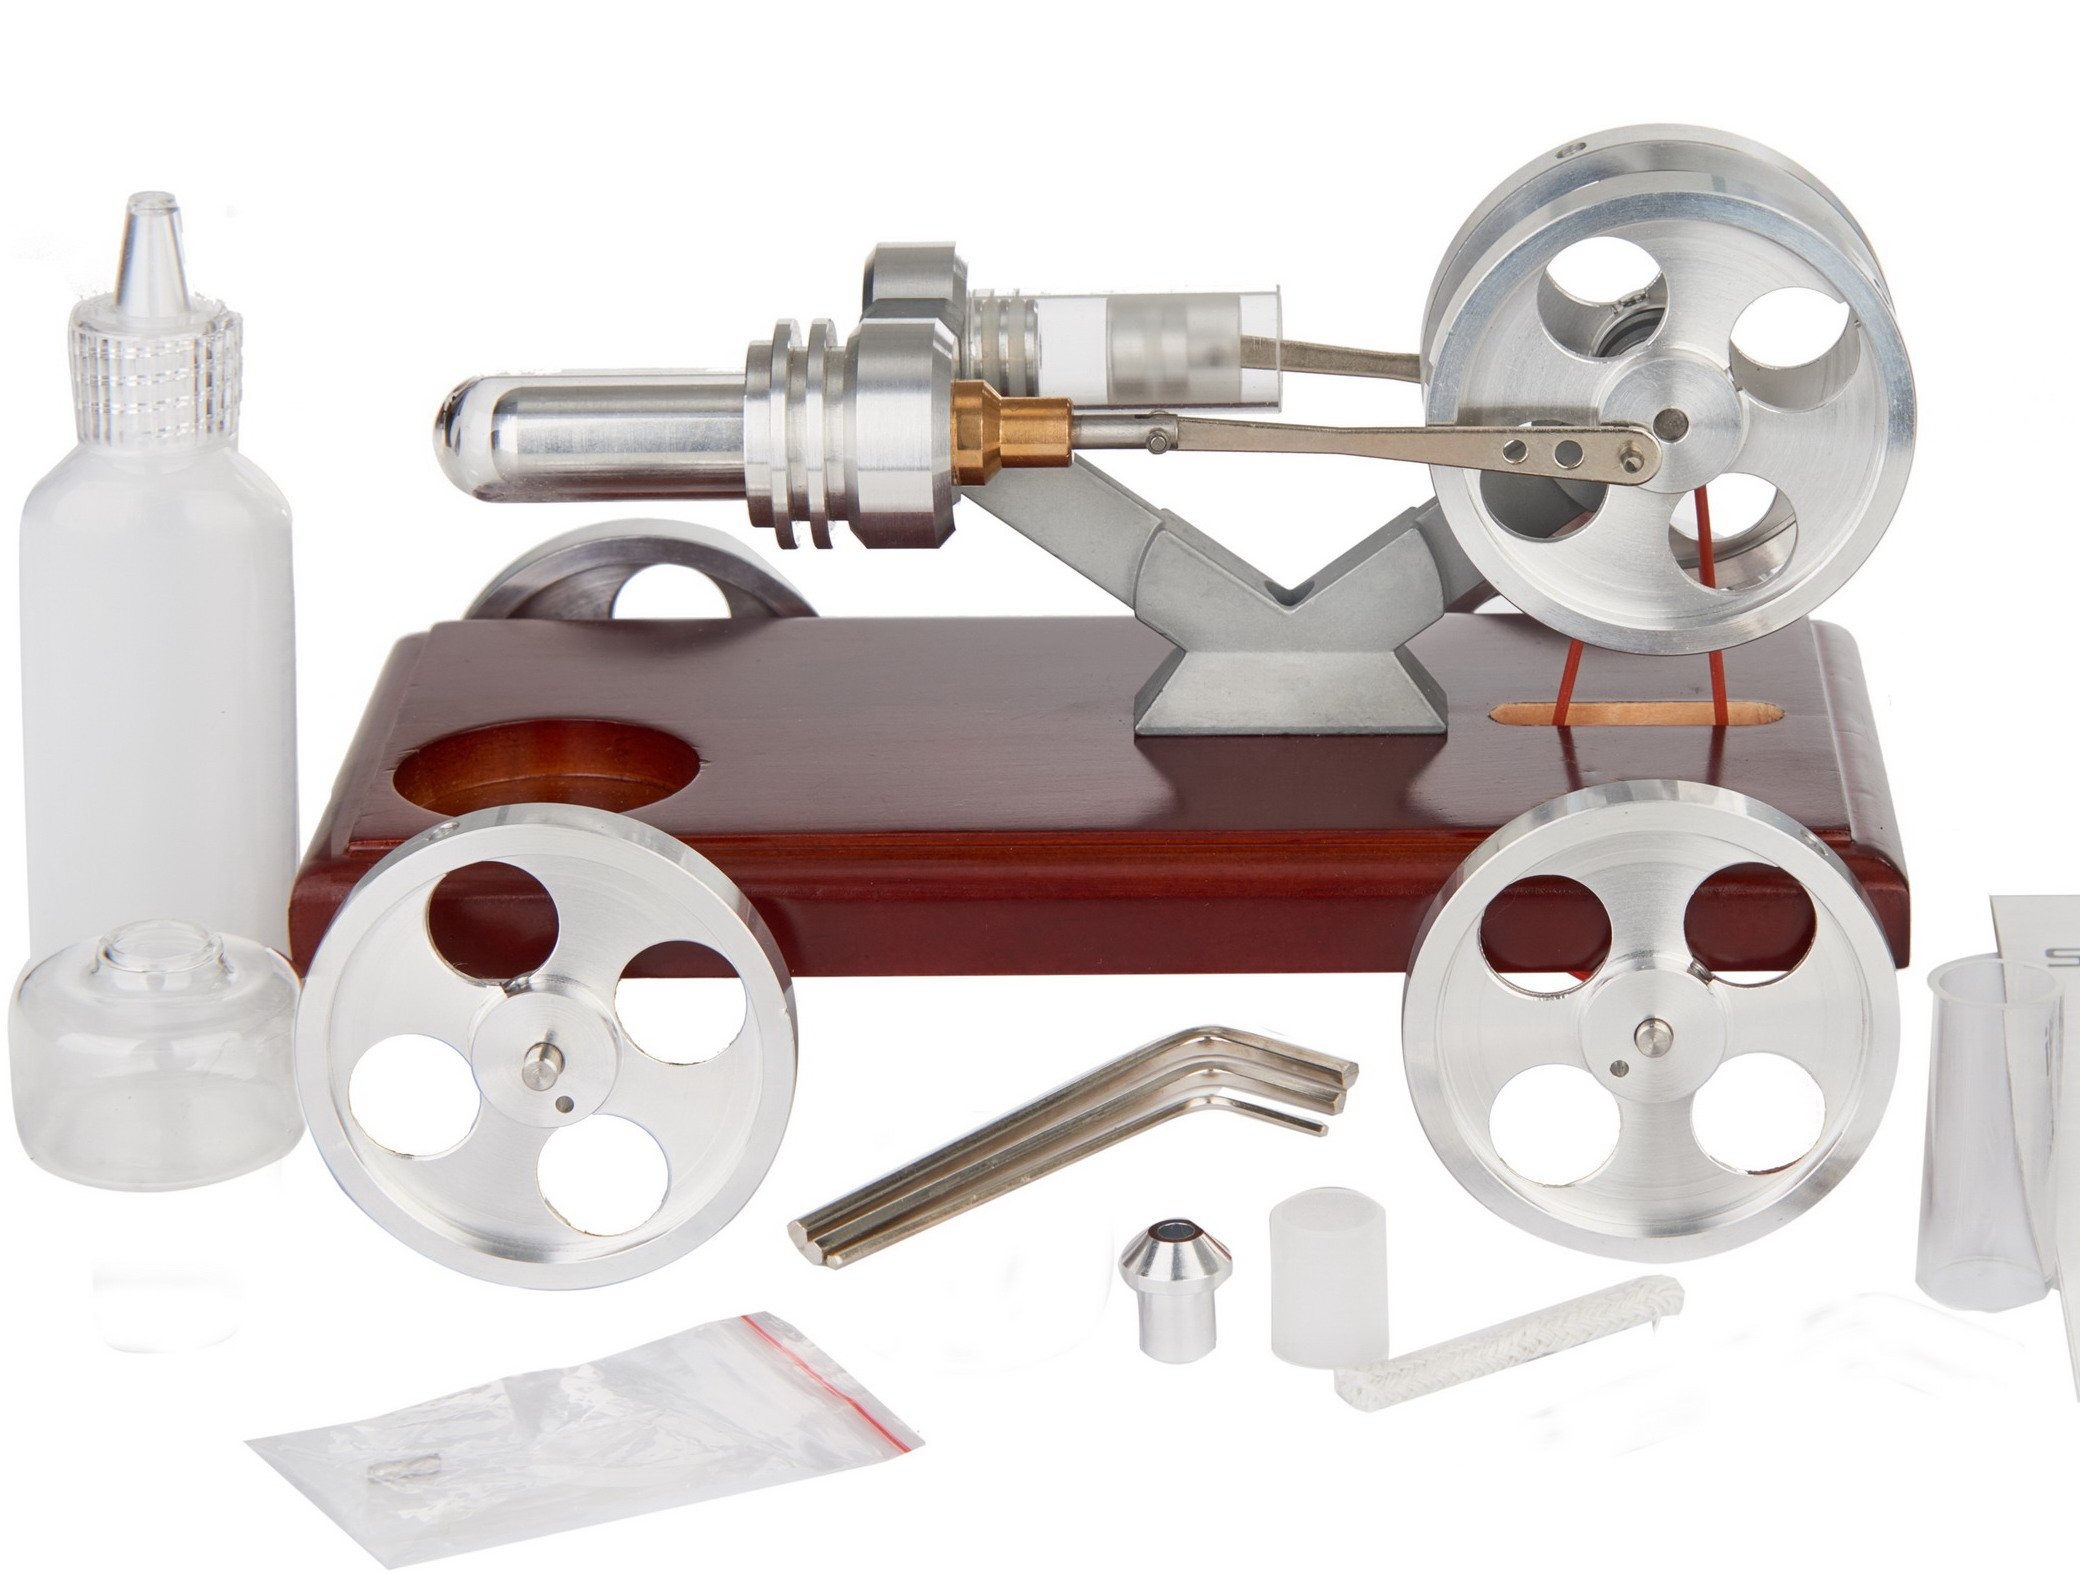 Sunnytech Hot Air Stirling Engine Education Toy Electricity Power (XC01)